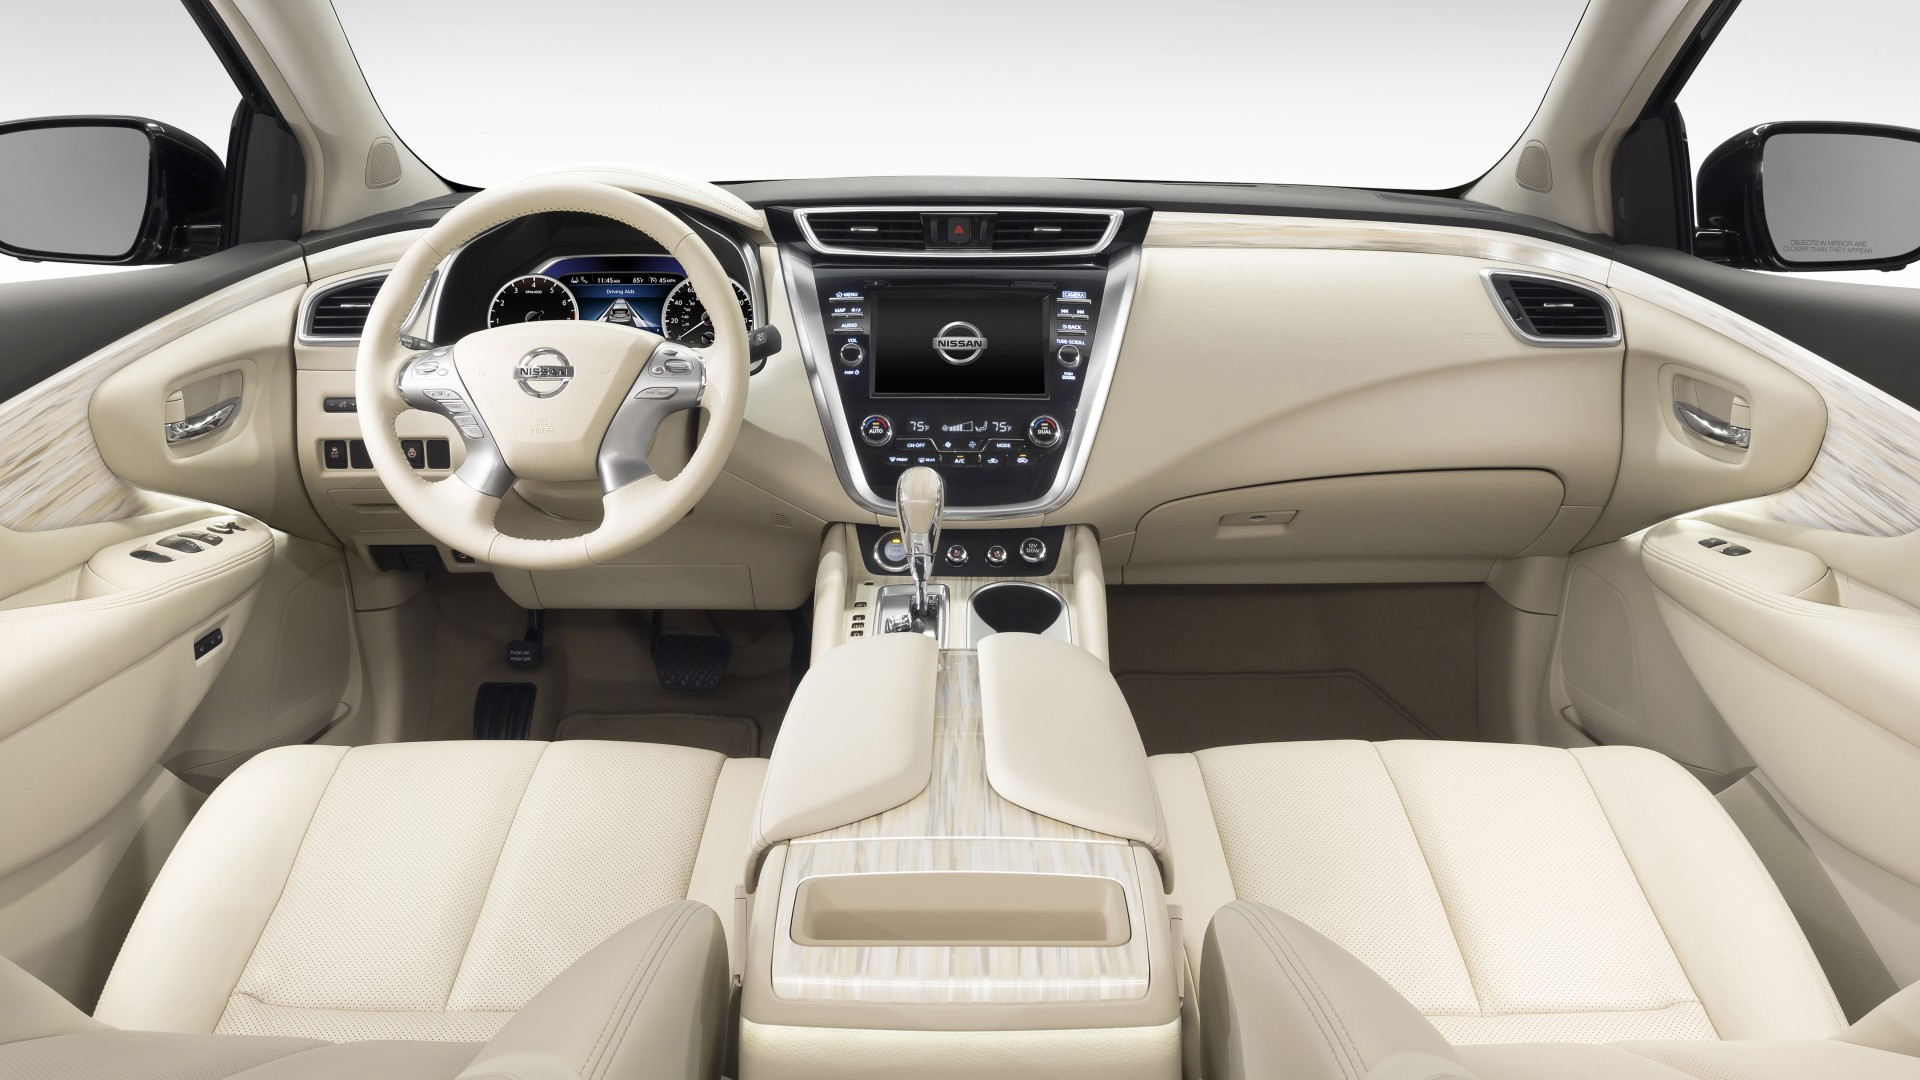 Nissan Murano, crossover, Nissan, interior, Gen 3, SUV, 2015 car, review, rent, buy, 2015 Detroit Auto Show. NAIAS (horizontal)